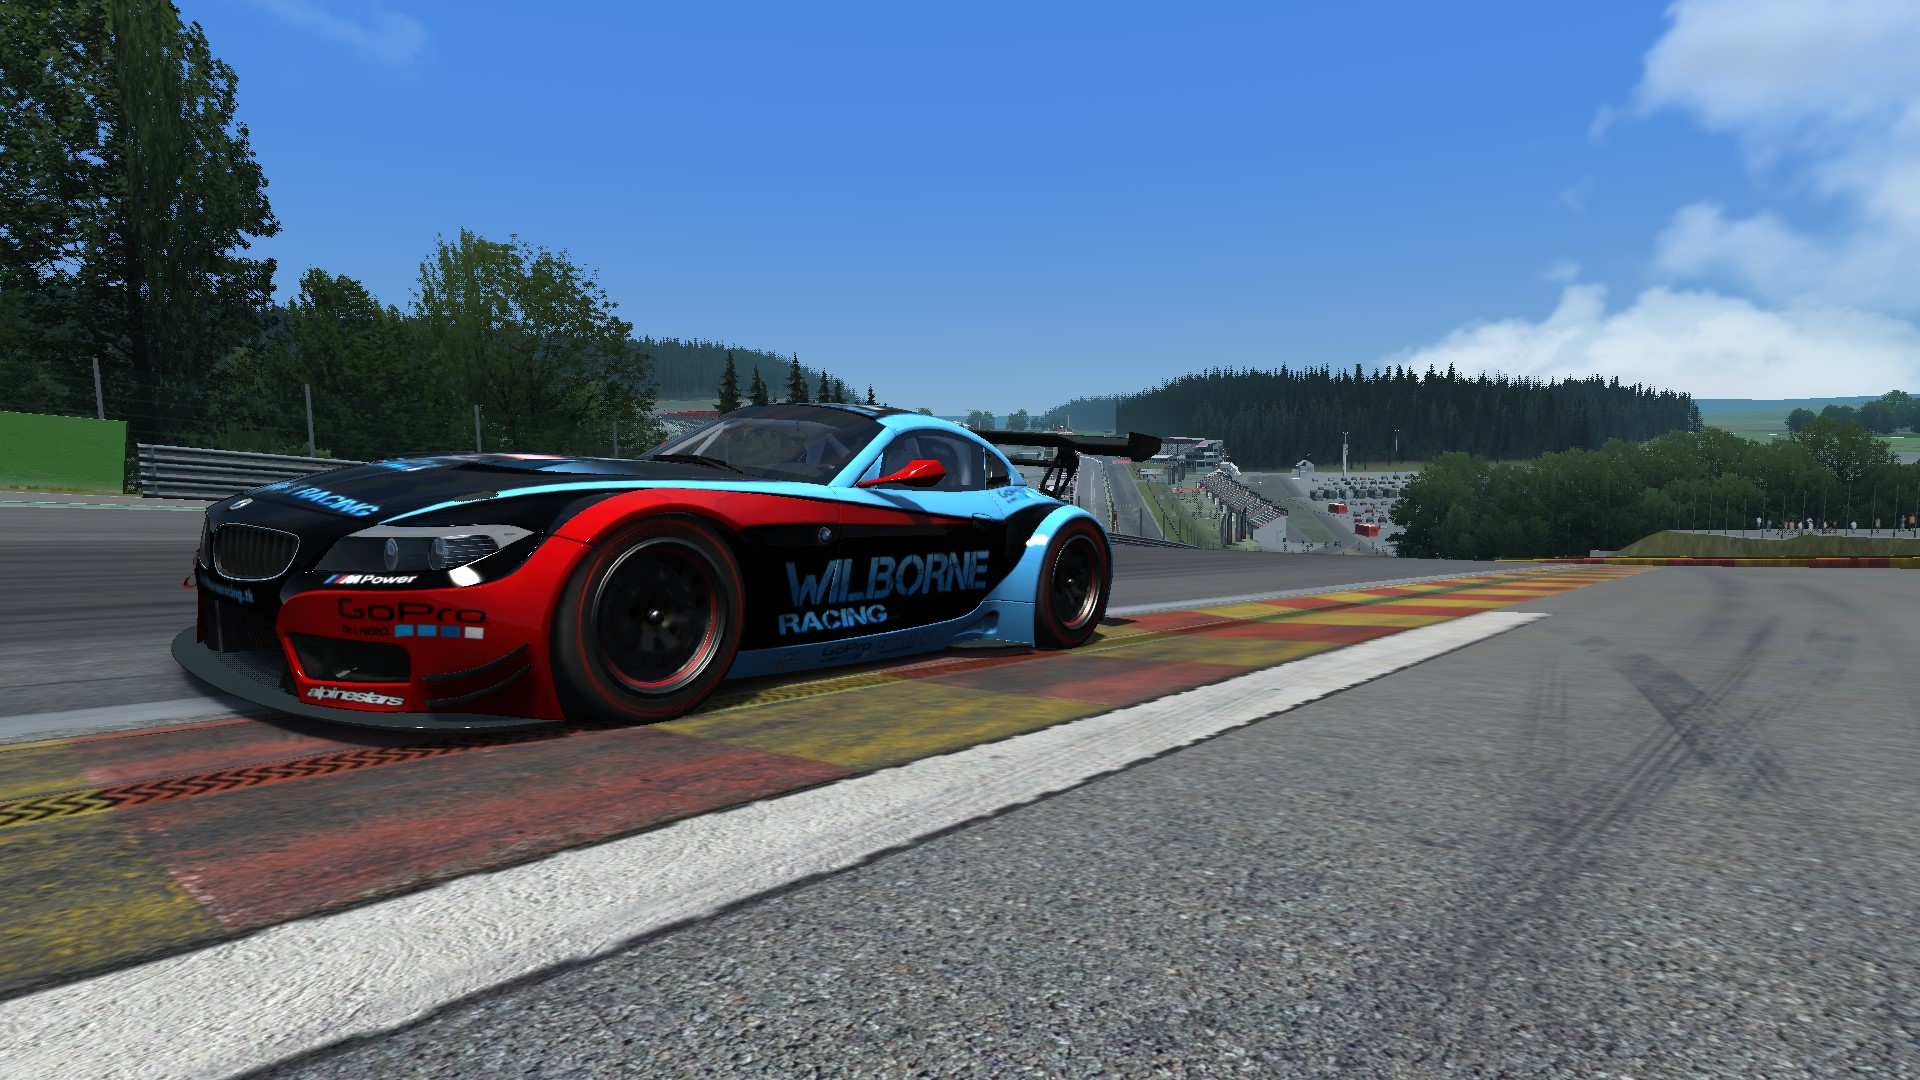 Screenshot_sareni_camaro_gt_racecar_spa_2-2-2015-17-10-27.jpg